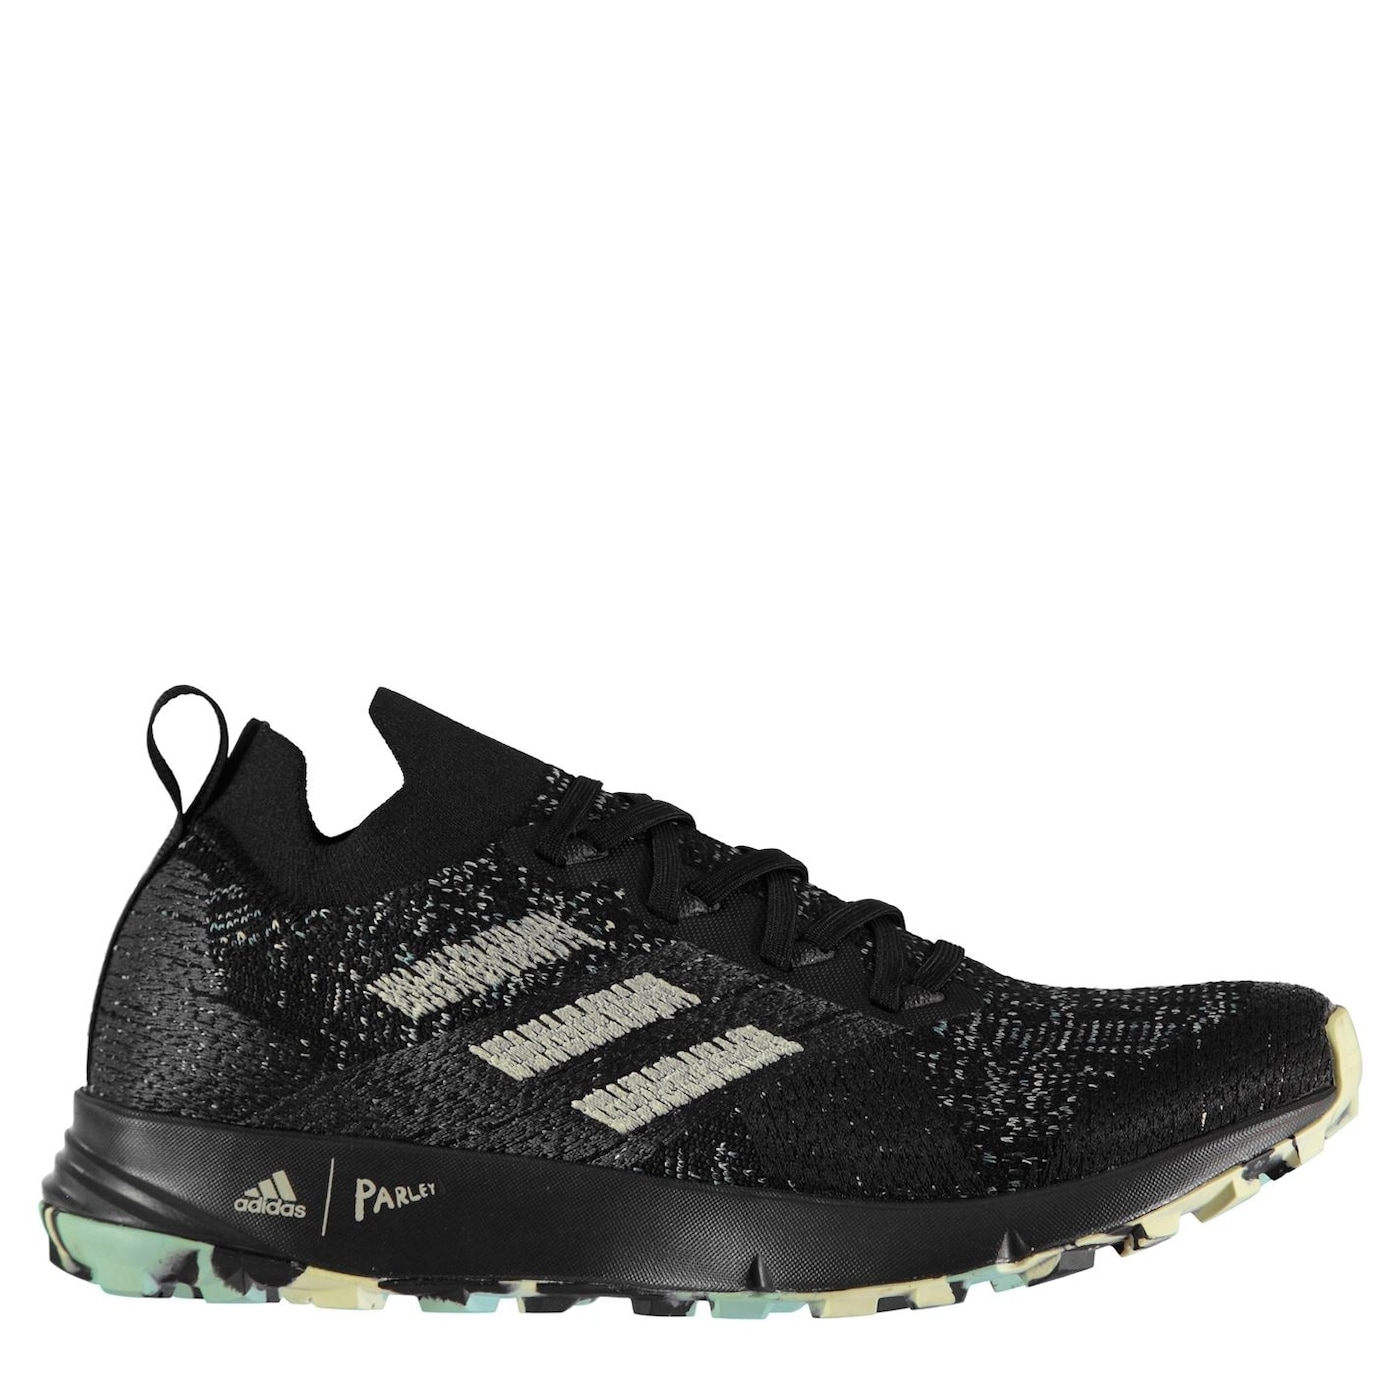 Adidas Terrex Two Parley Mens Trail Running Shoes